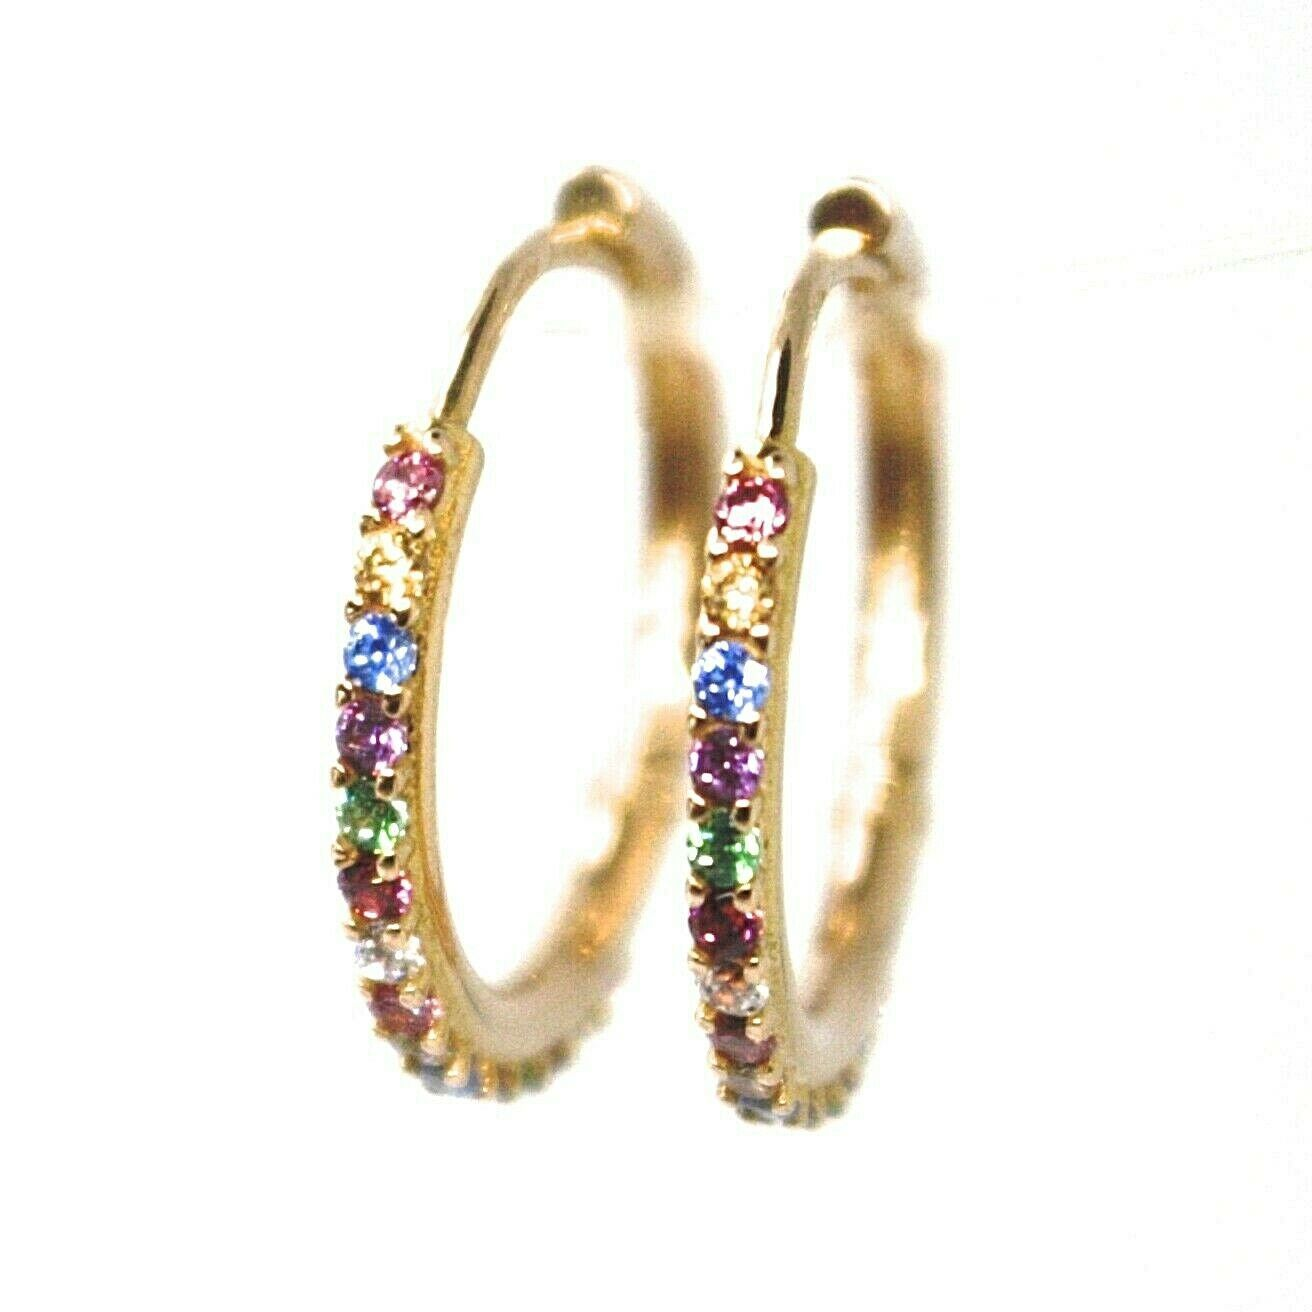 18K ROSE GOLD HOOPS EARRINGS, CUBIC ZIRCONIA MULTI COLOR, 20mm, 0.8 inches